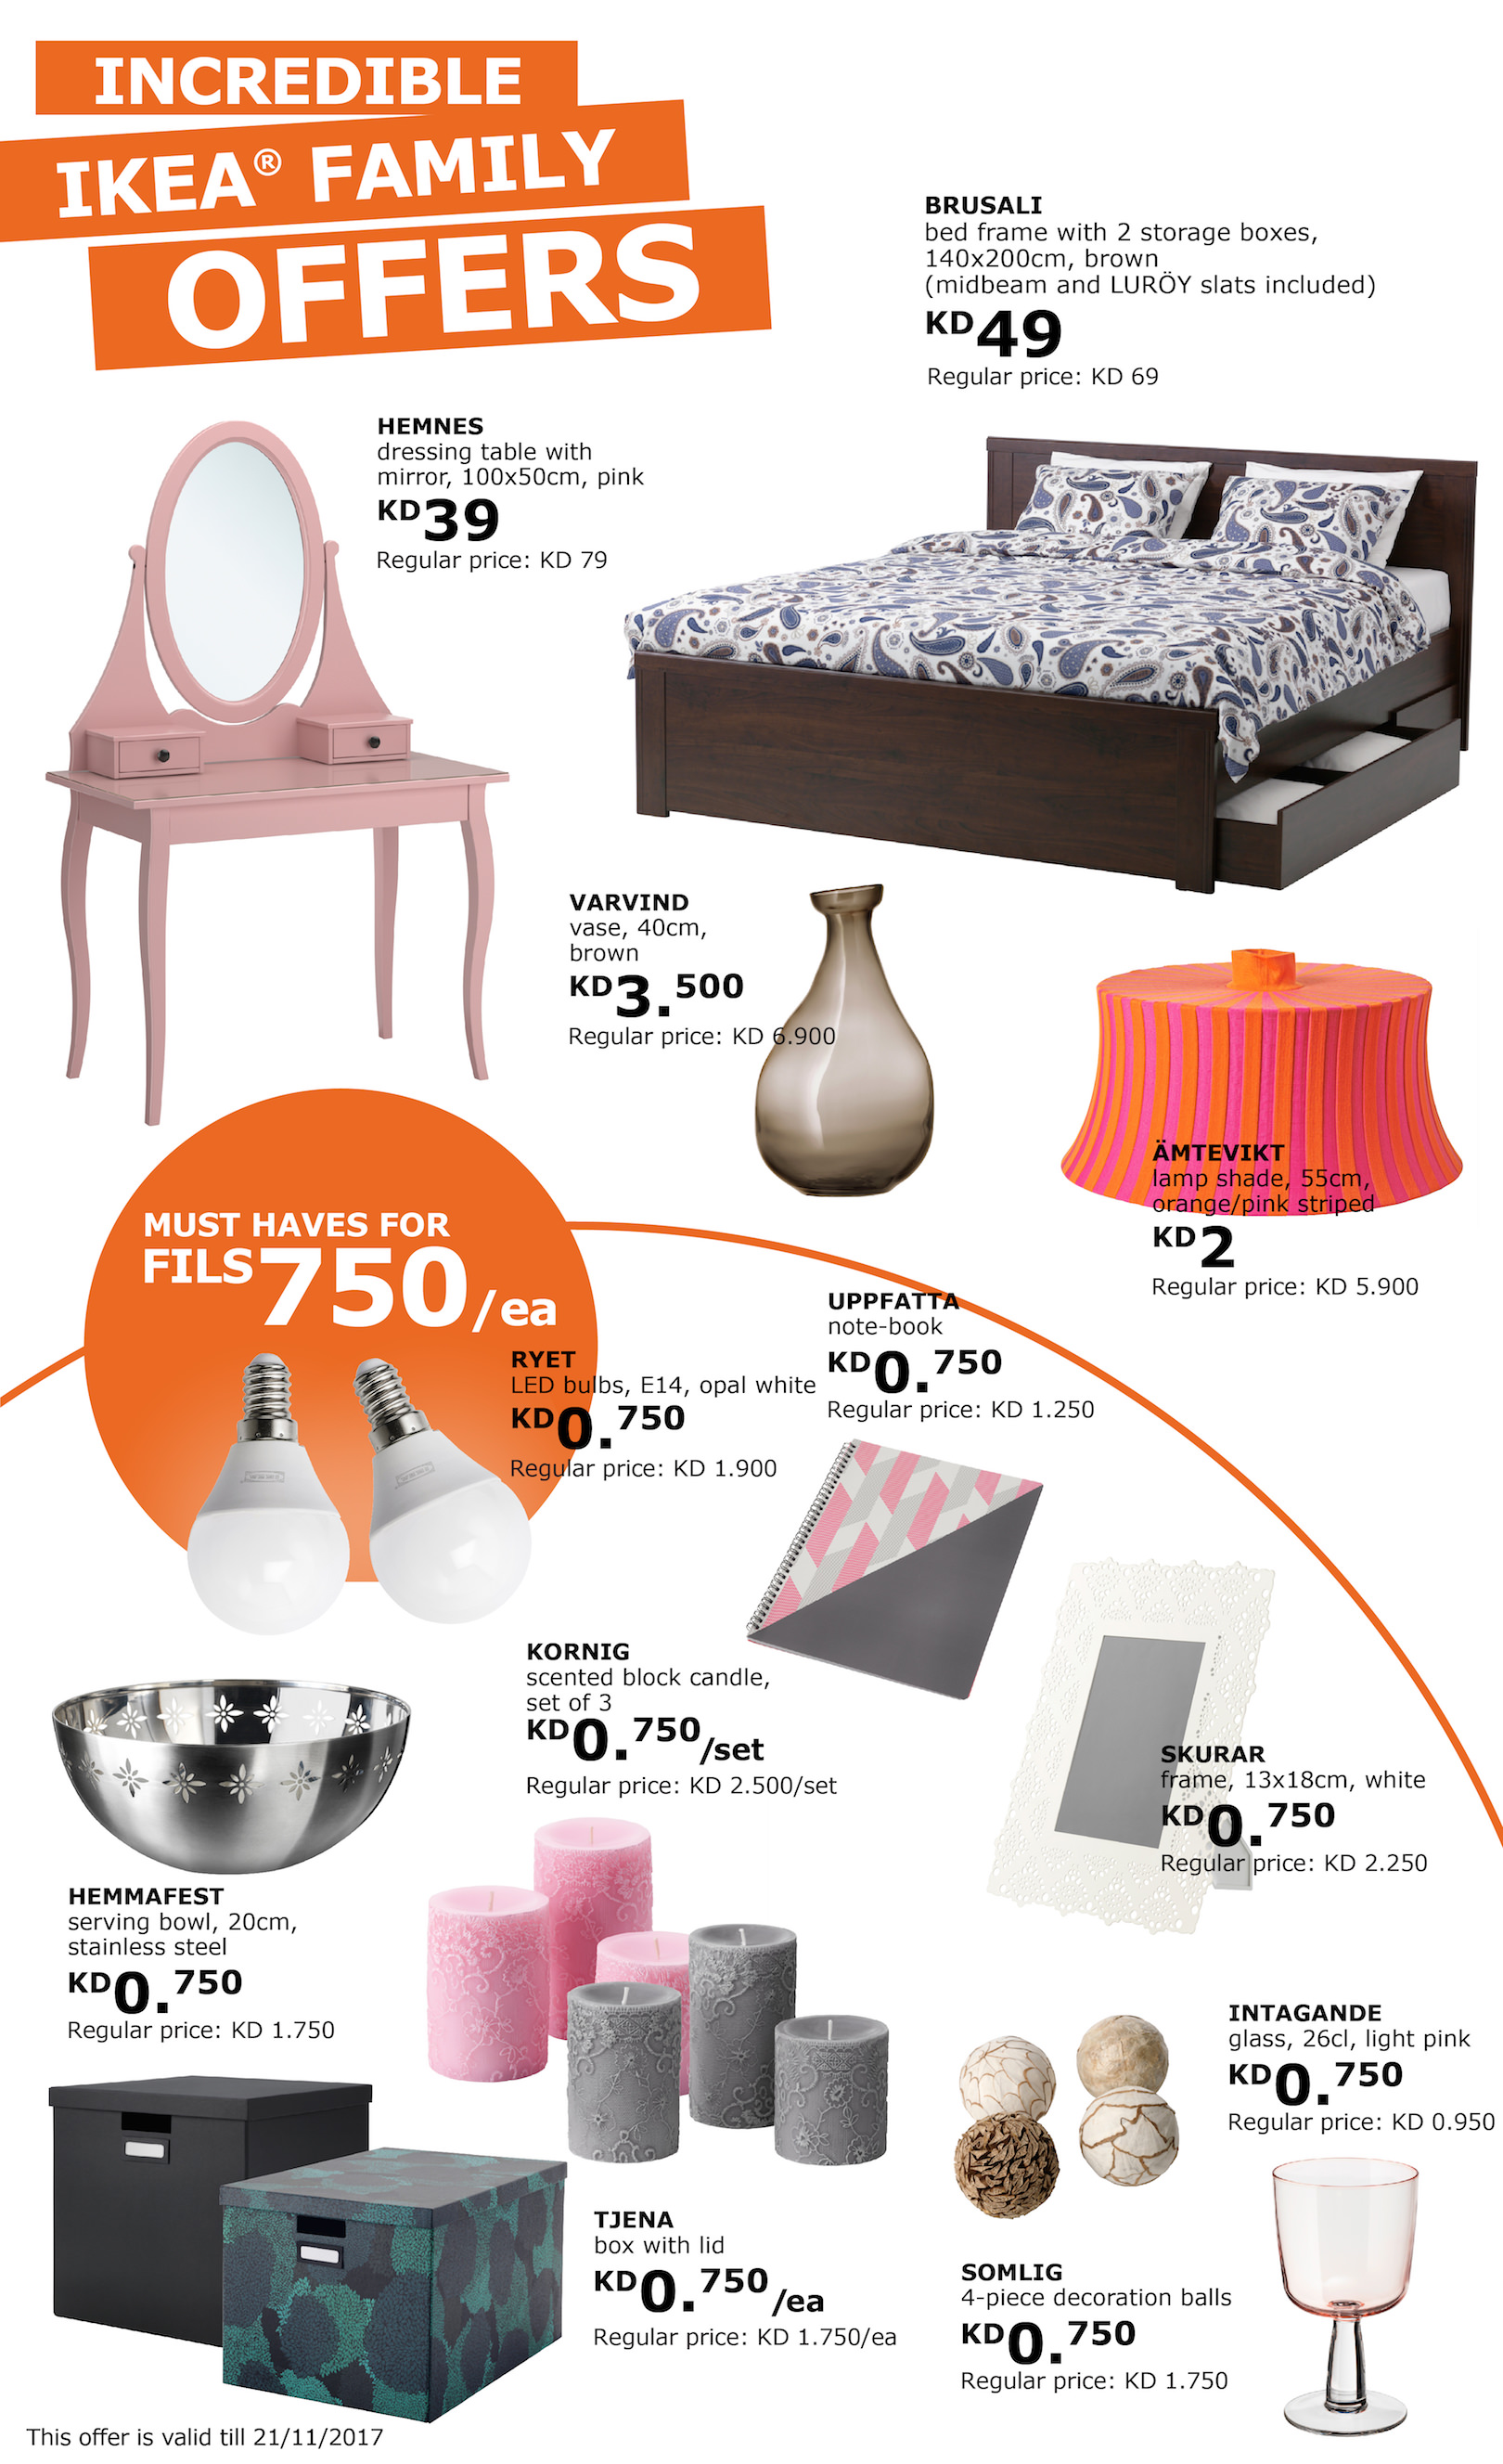 huge ikea sale on a big amount of products for ikea family members